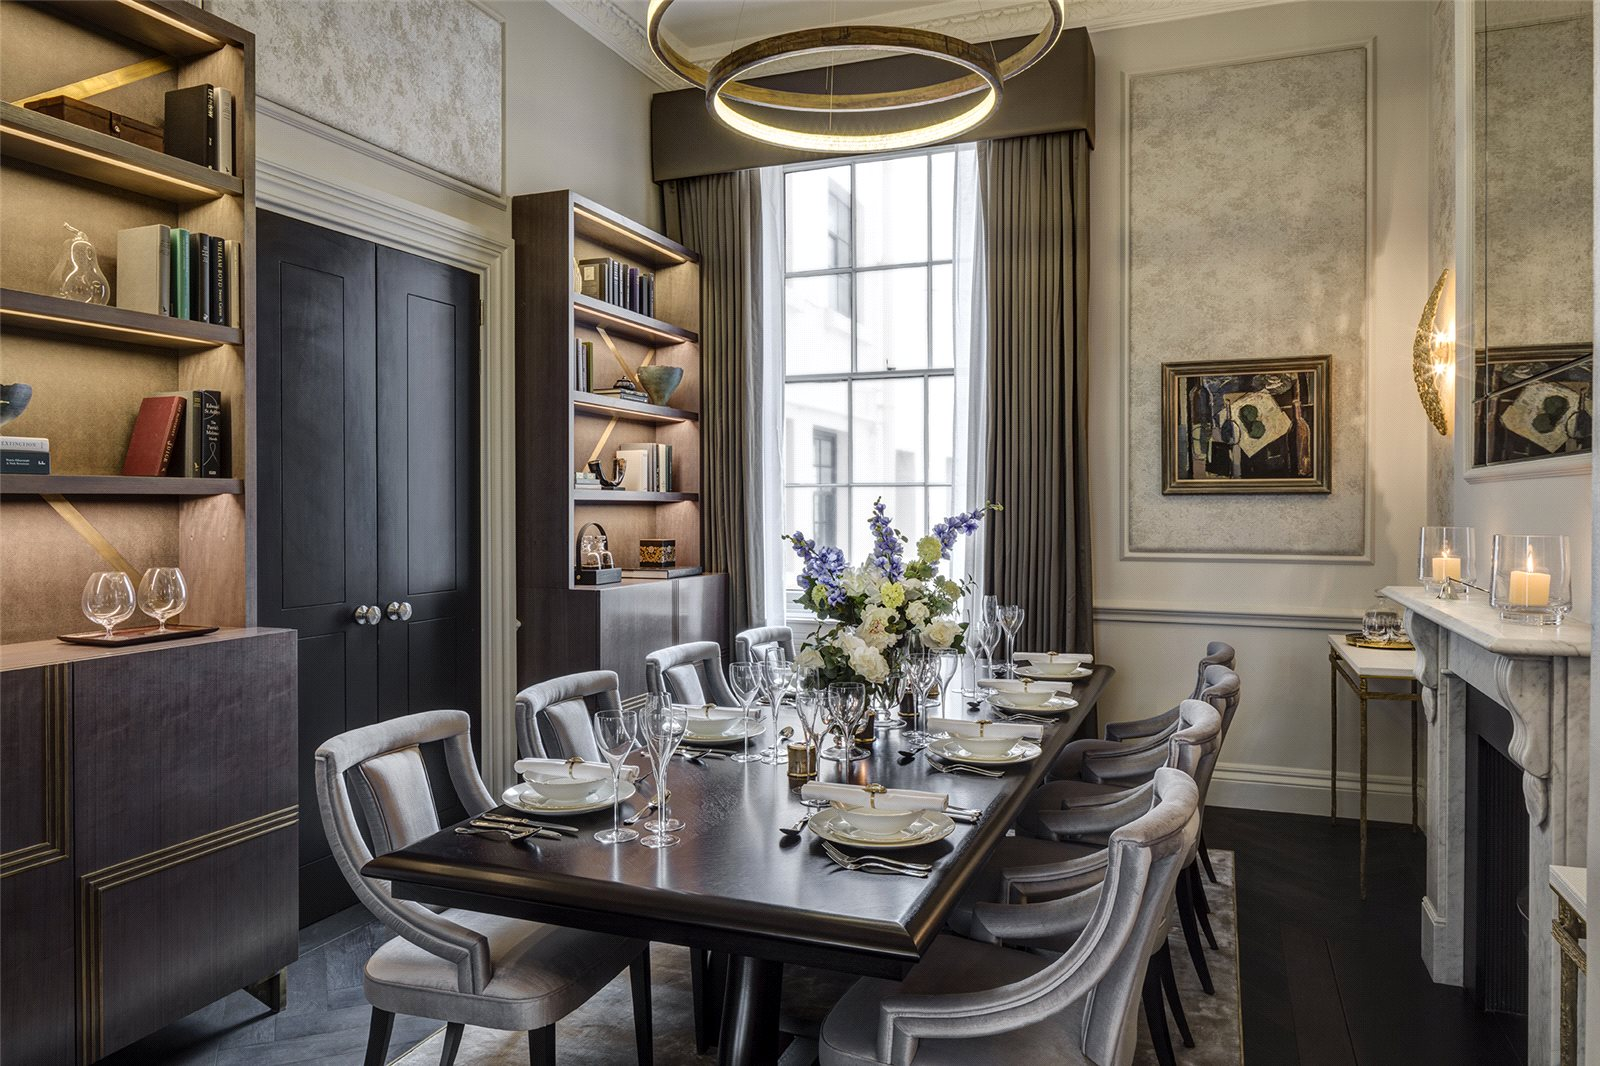 Apartments / Residences for Sale at Eaton Place, Belgravia, London, SW1X Belgravia, London, England